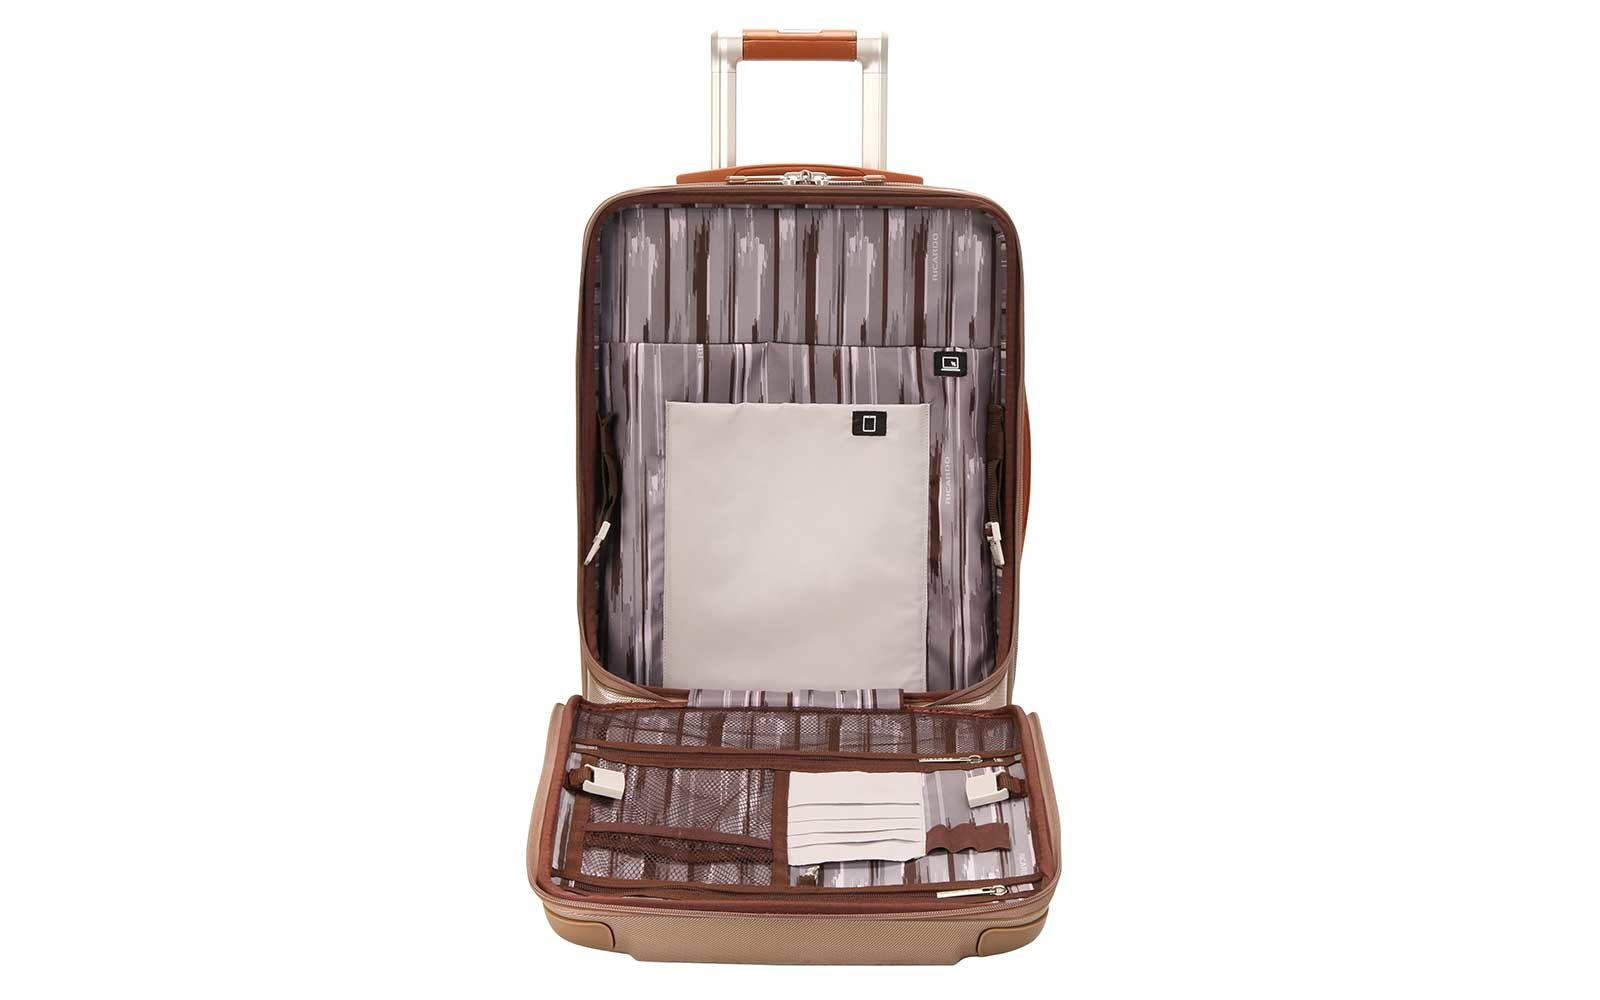 Mobile Office Bag